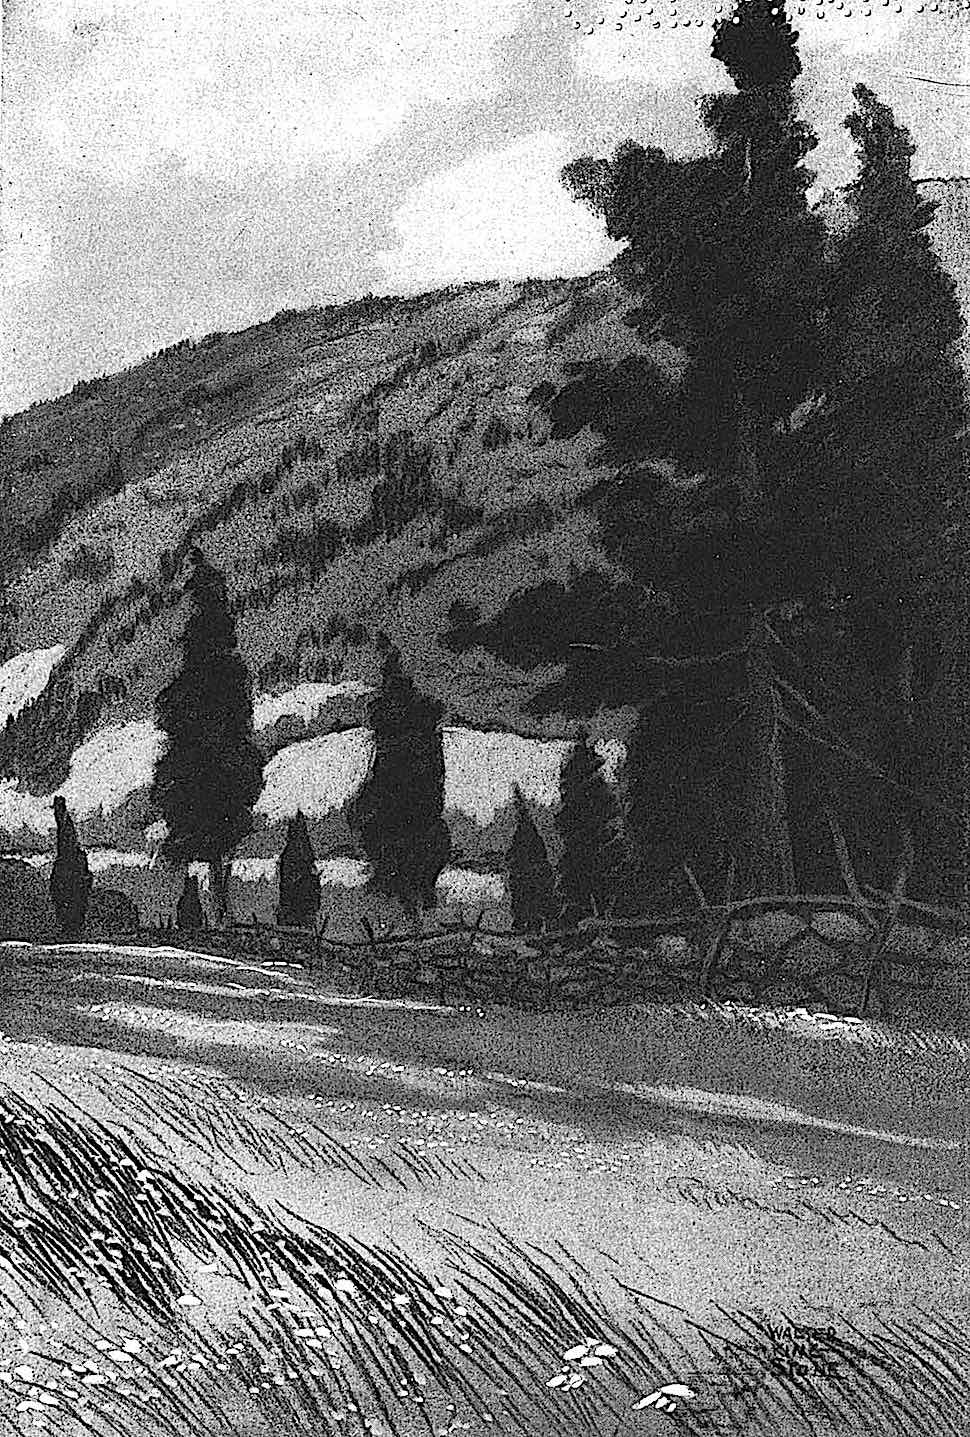 Walter King Stone illustration 1920, wild field with trees